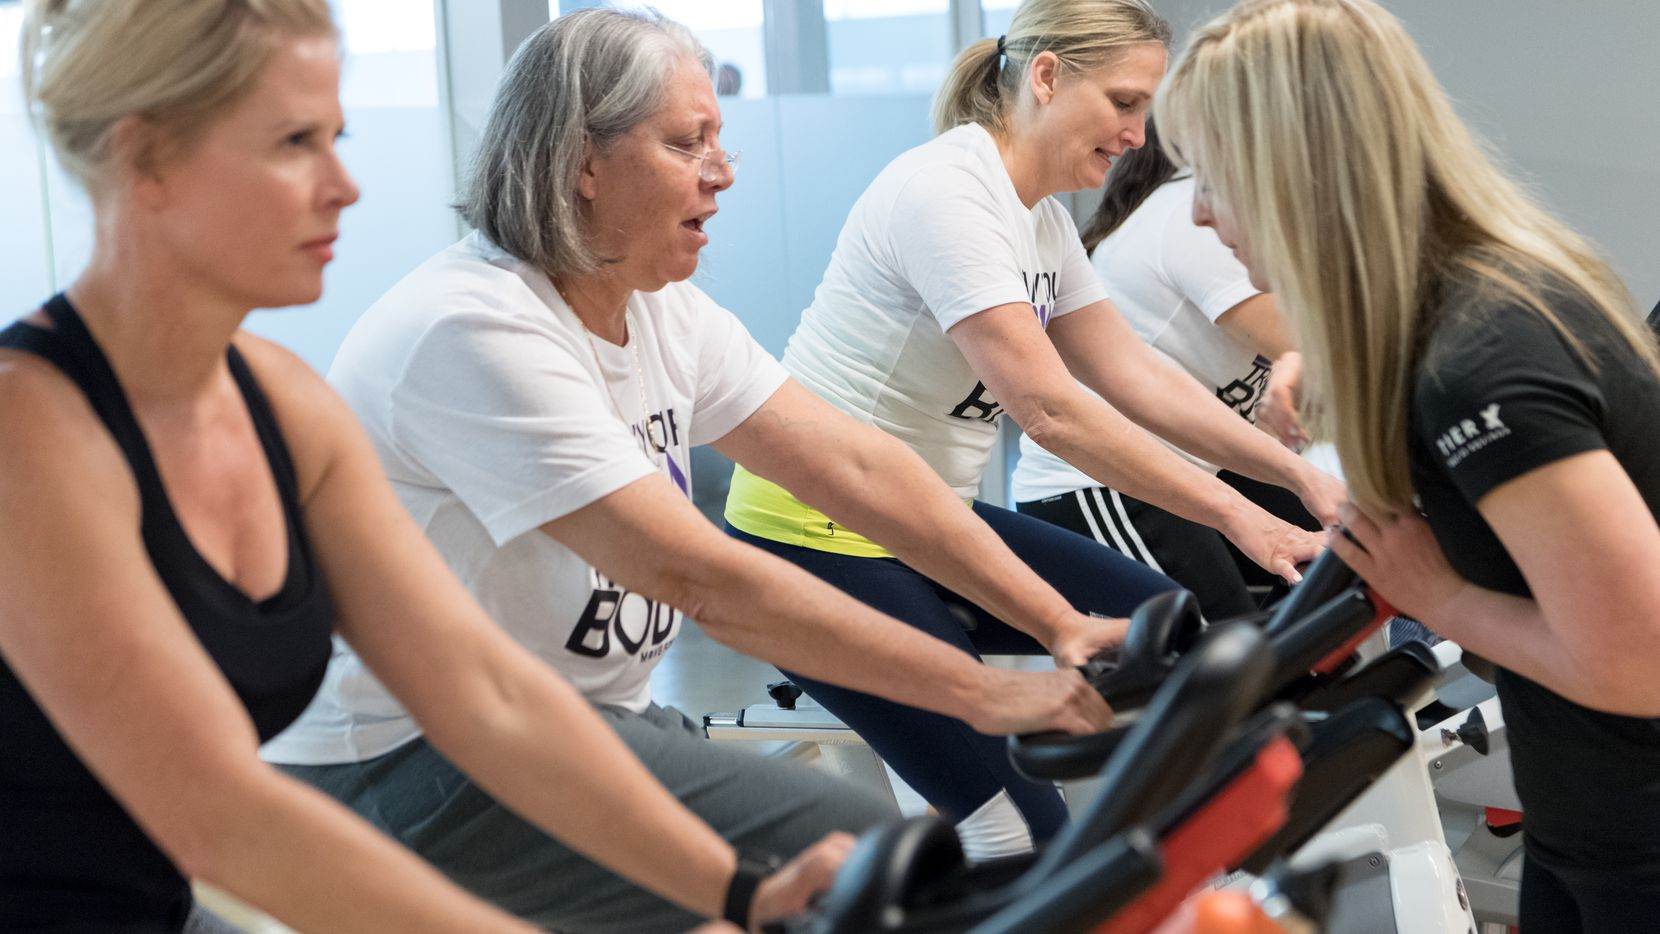 Participants attended the Move for Minds event at Equinox in Dallas on June 4. The event, which visited eight cities in one day, embraces Alzheimer's prevention through brain-healthy nutrition, meditation, education and fitness.